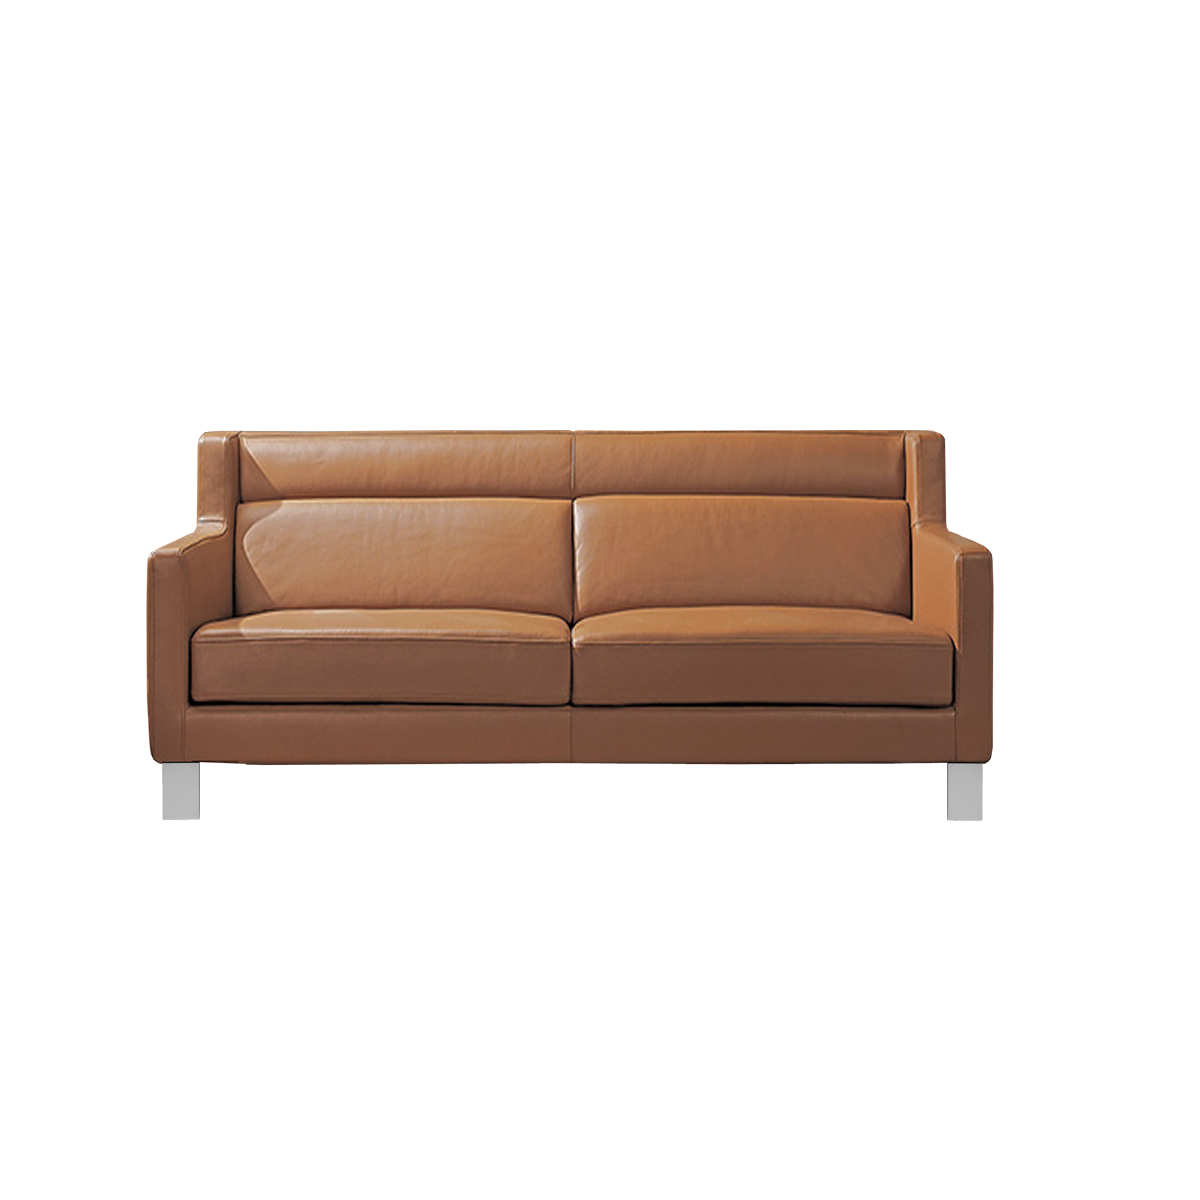 Spazisio 2 seater sofa beyond furniture for 2 seater chaise sofa for sale